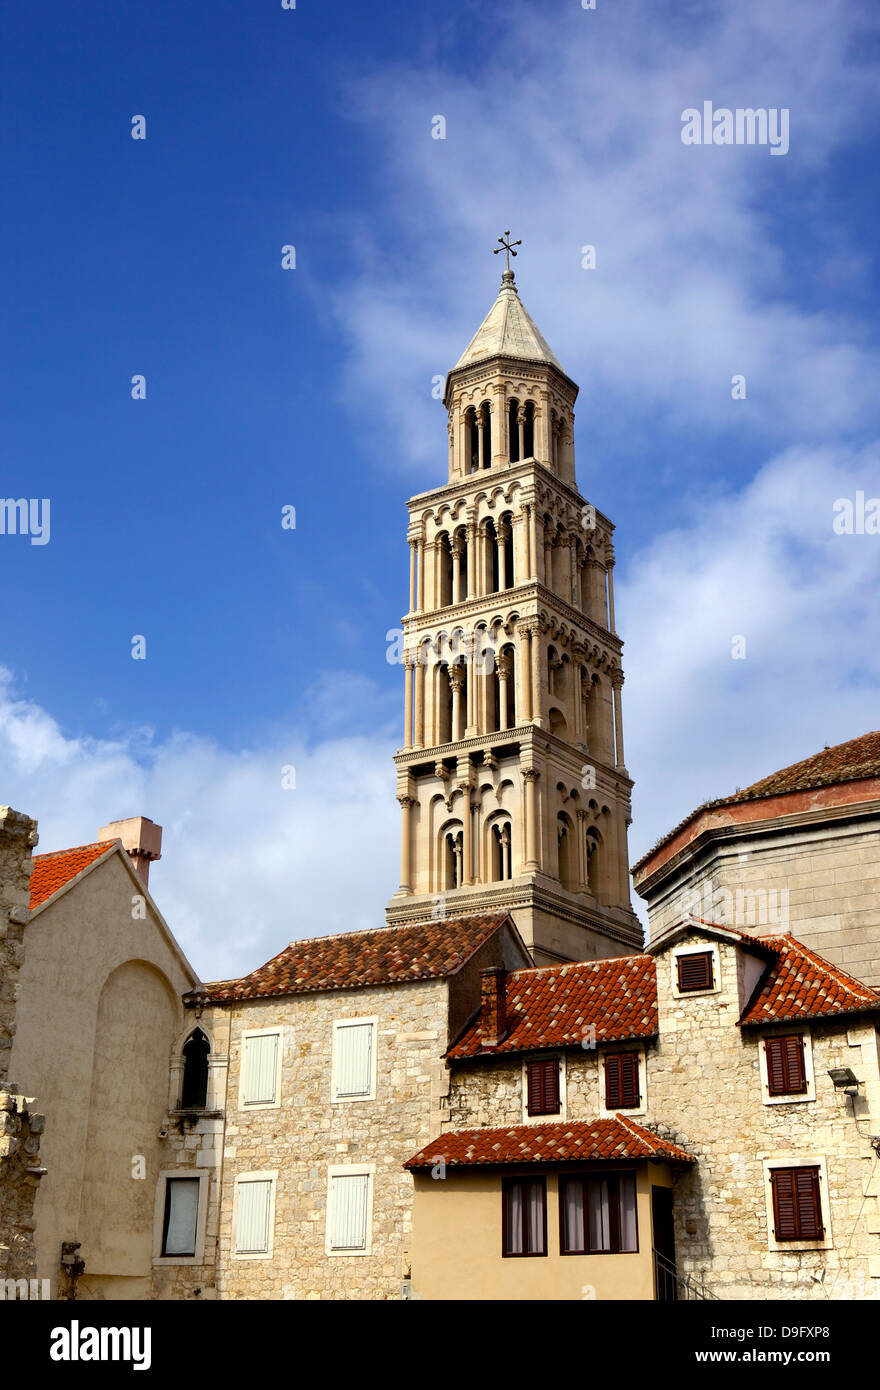 The Campanile (bell tower) of Cathedral of St. Domnius, Split, Dalmatian coast, Croatia - Stock Image